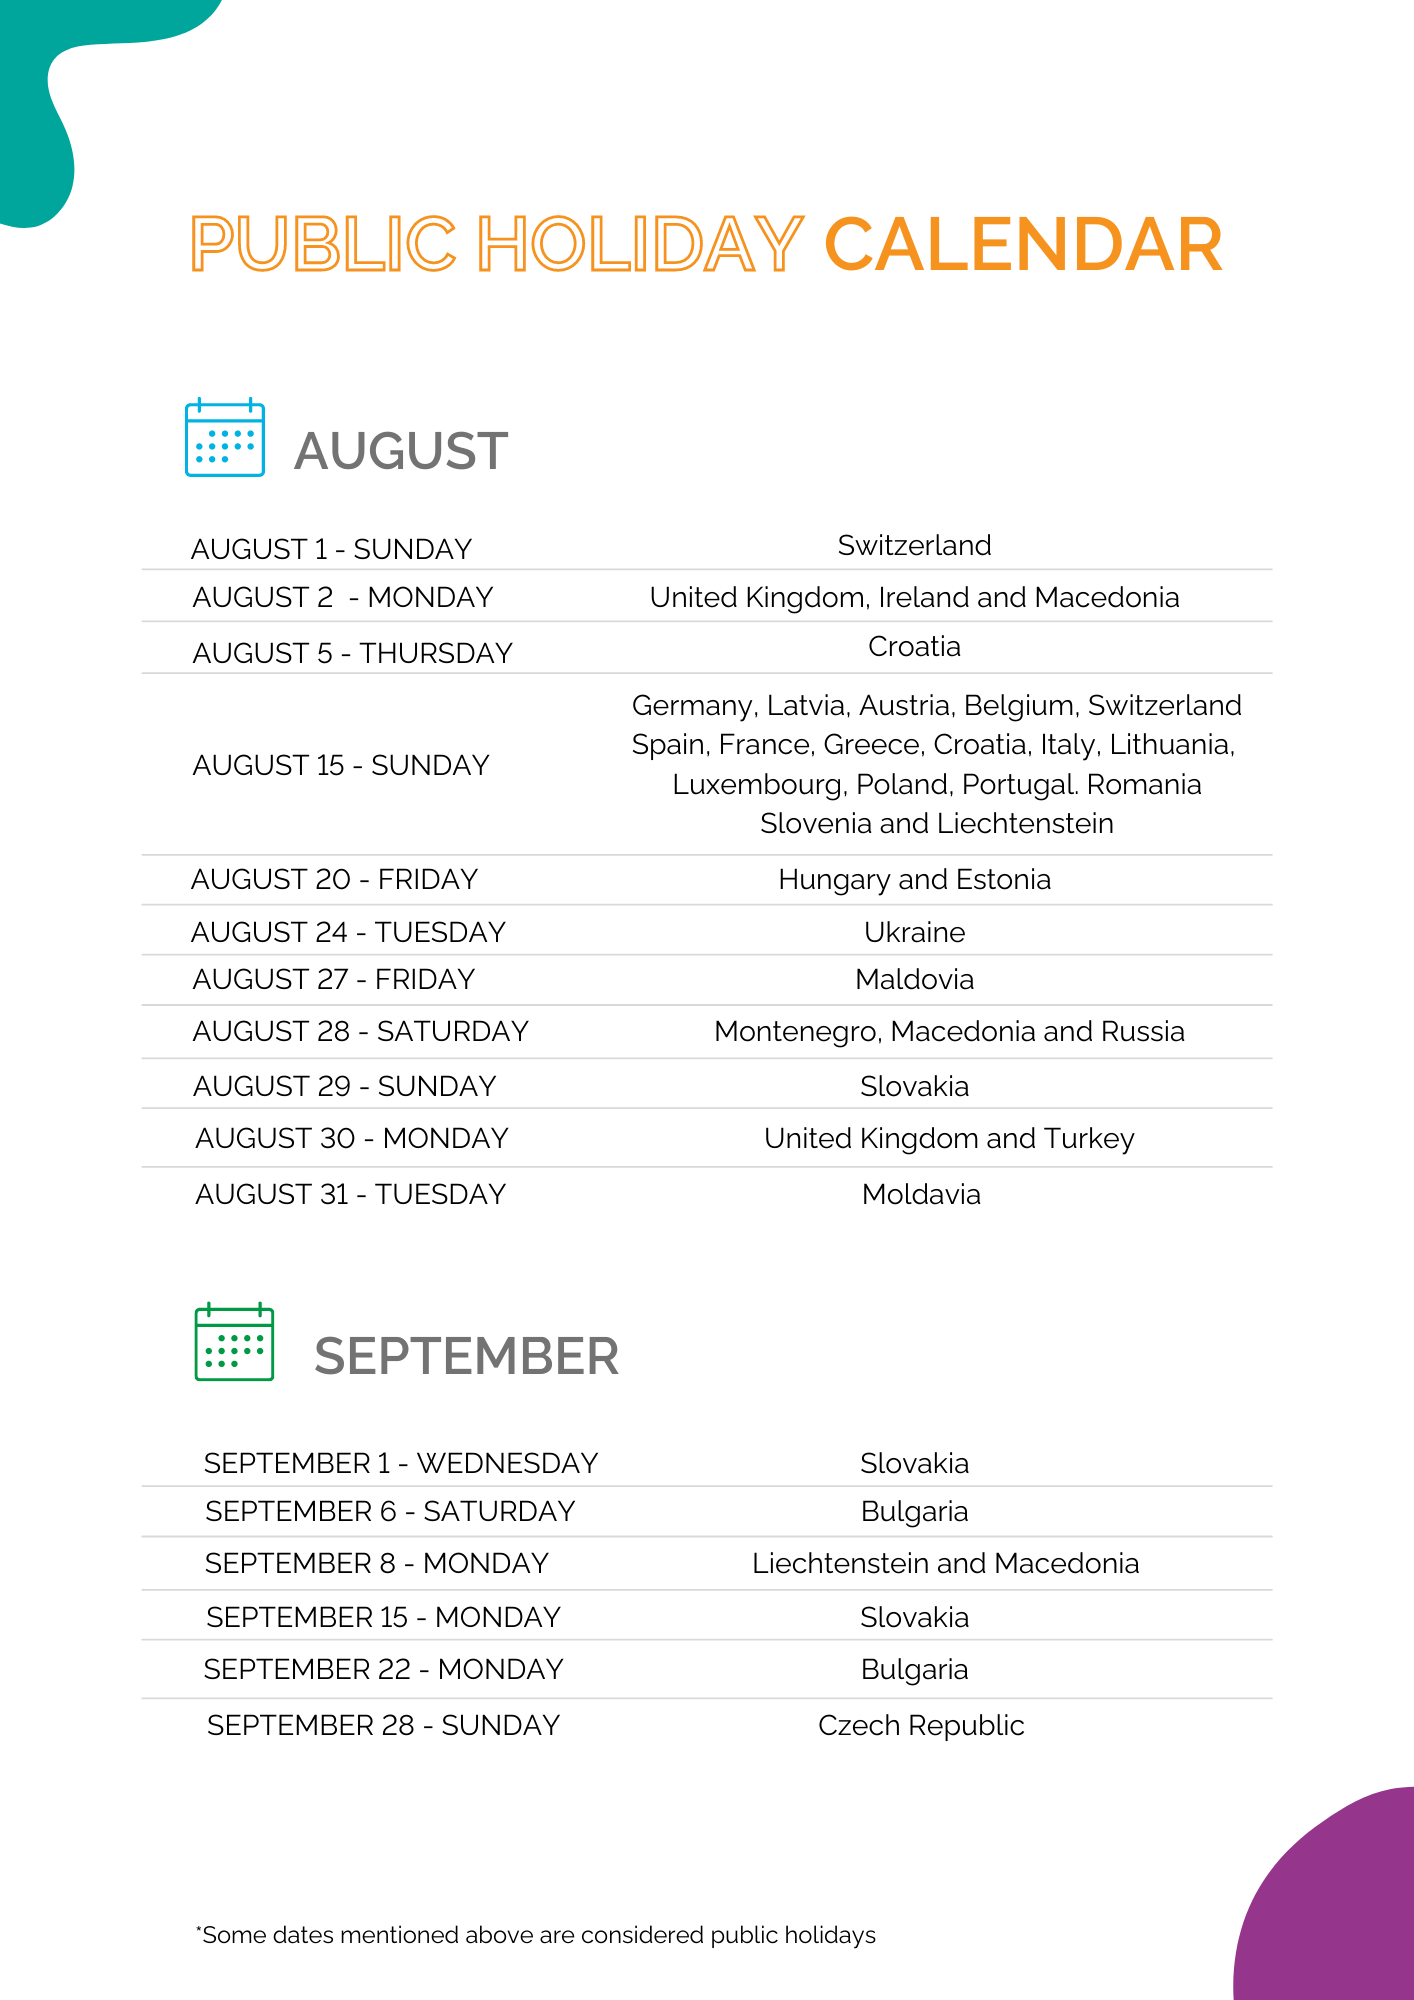 Public Holidays in August and September 2021